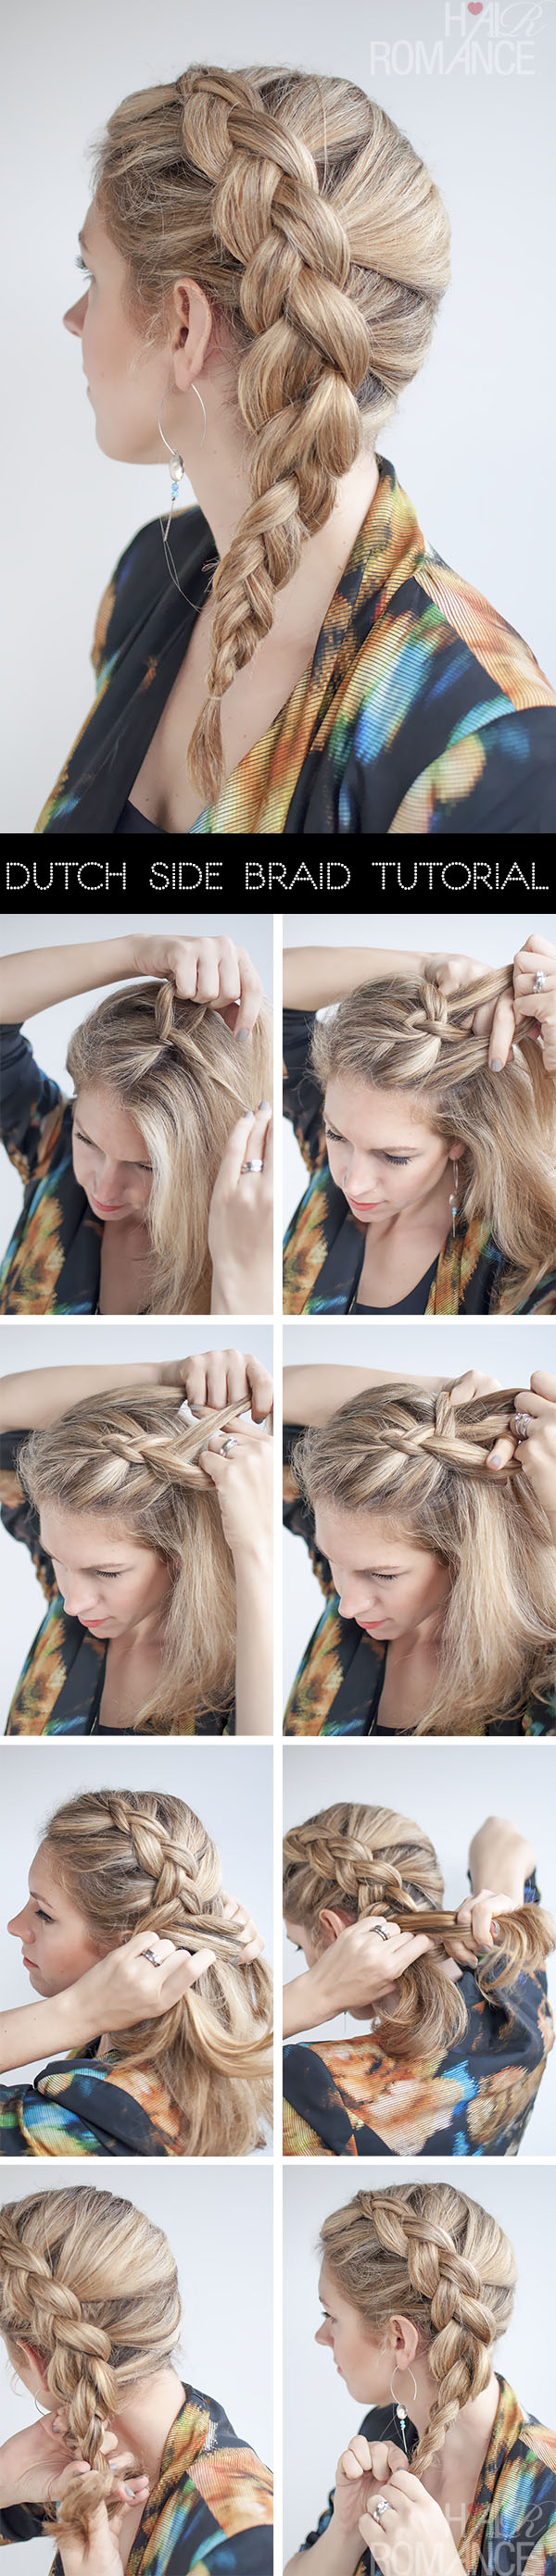 Dutch side braid hairstyle tutorial